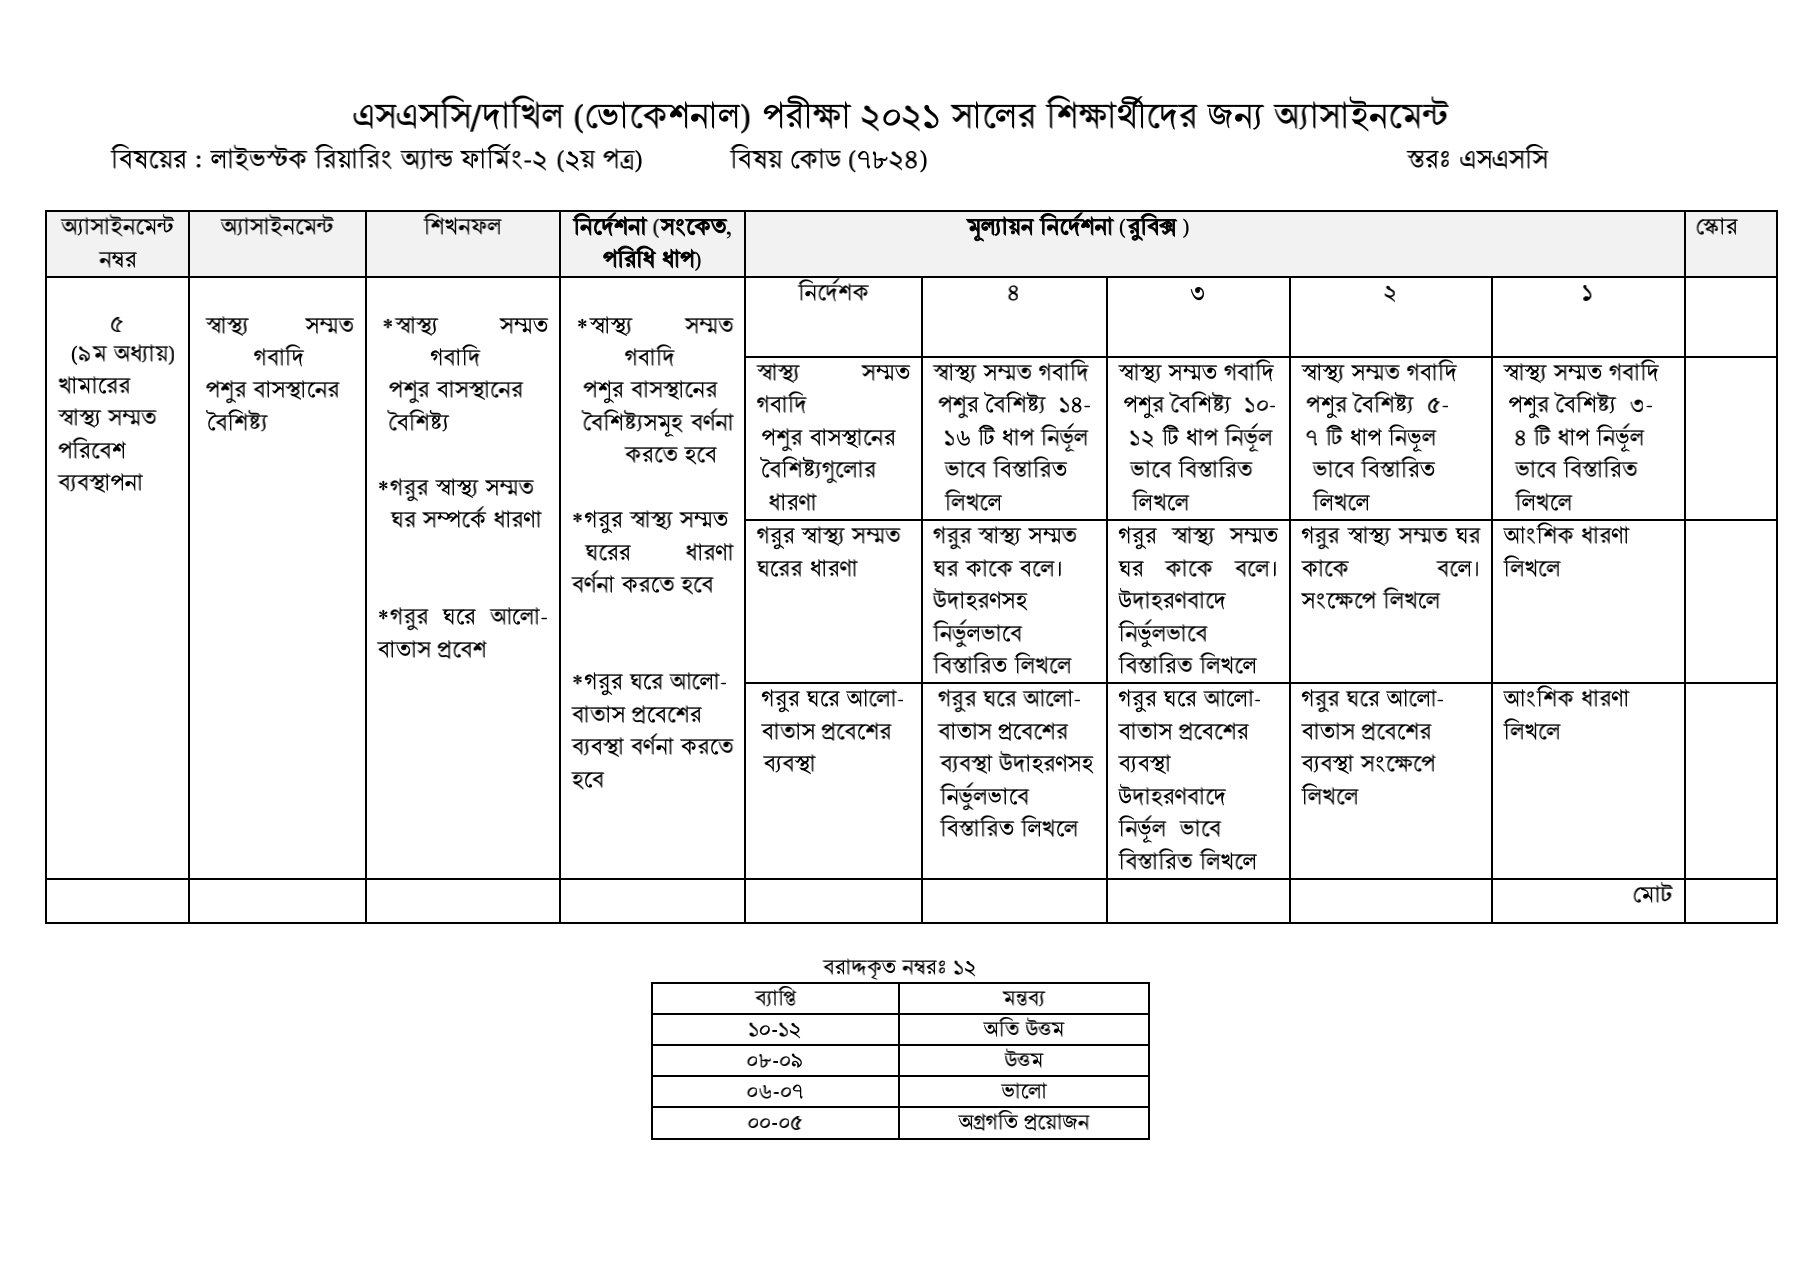 SSC / Dakhil (Vocational) Livestock Rearing and Farming Assignment Answer 2021 1